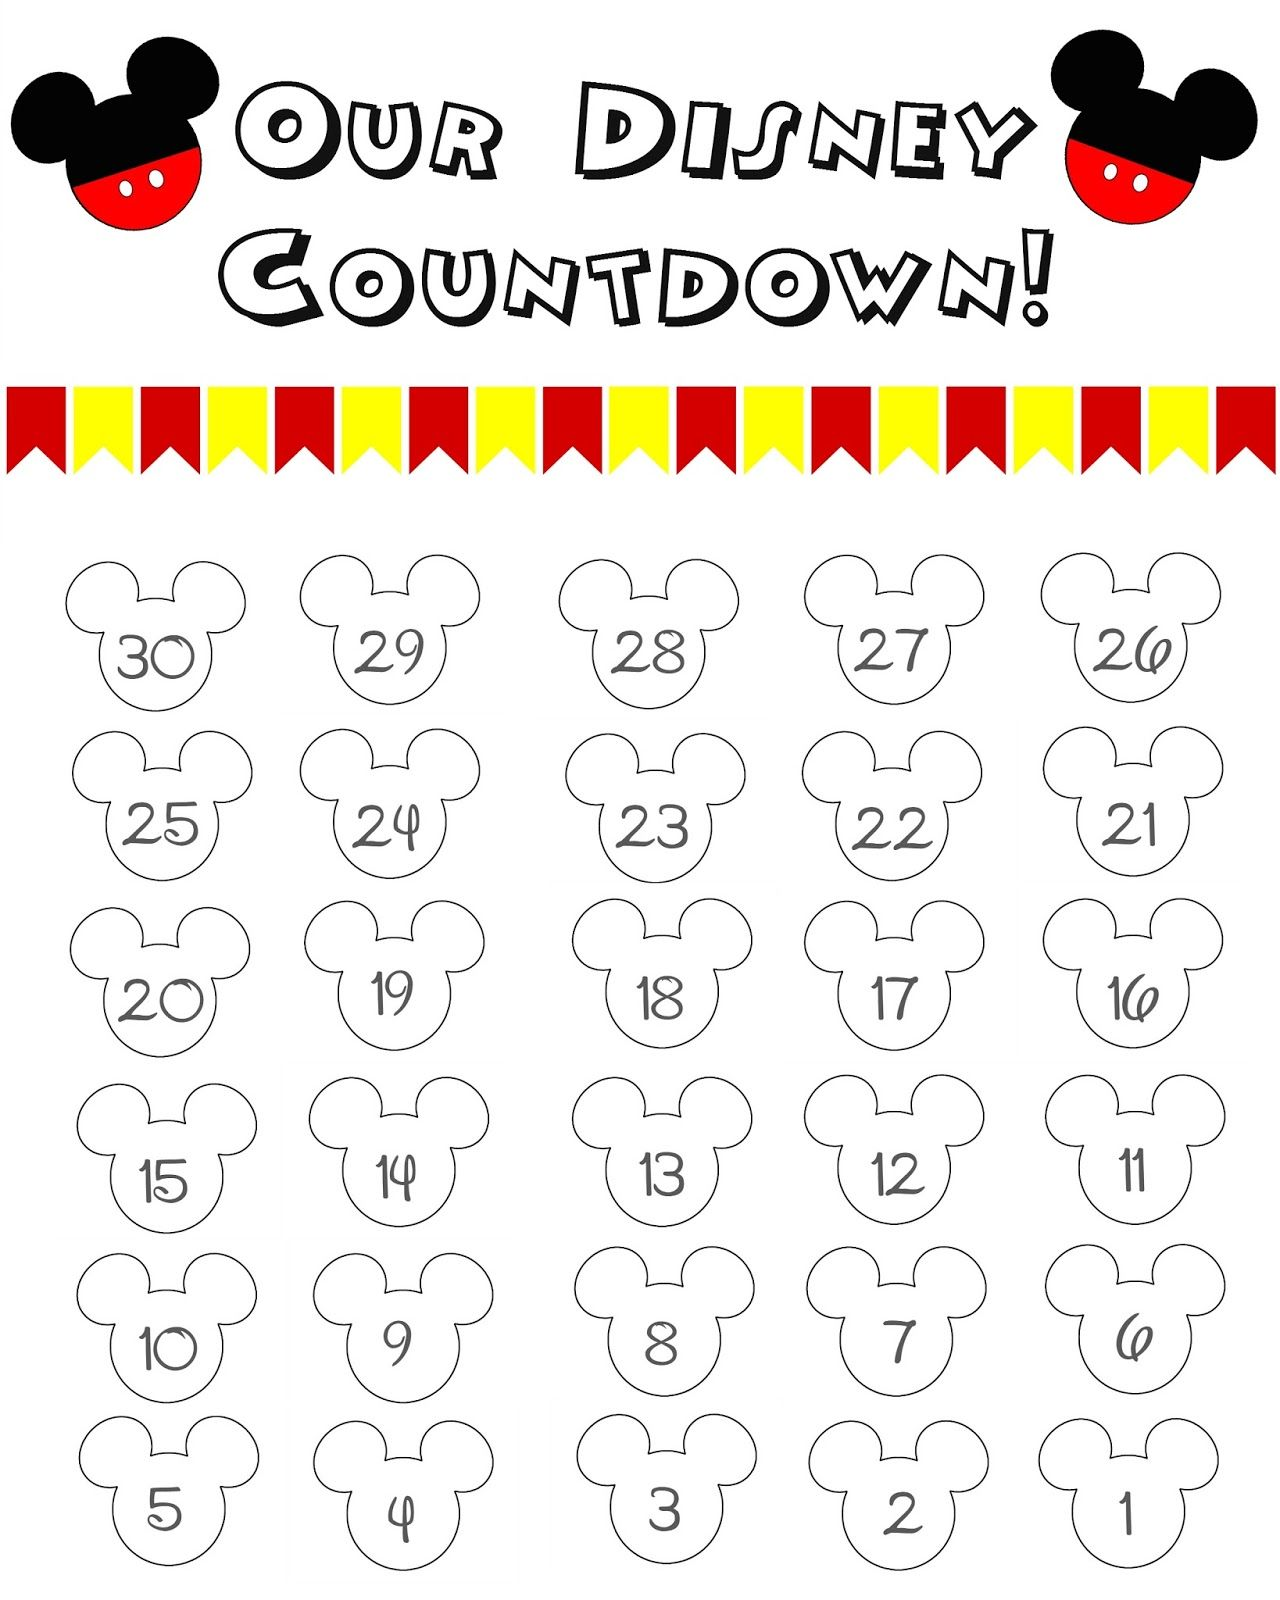 graphic regarding Countdown Calendar Printable known as Disney Worldwide Countdown Calendar - Free of charge Printable The Momma